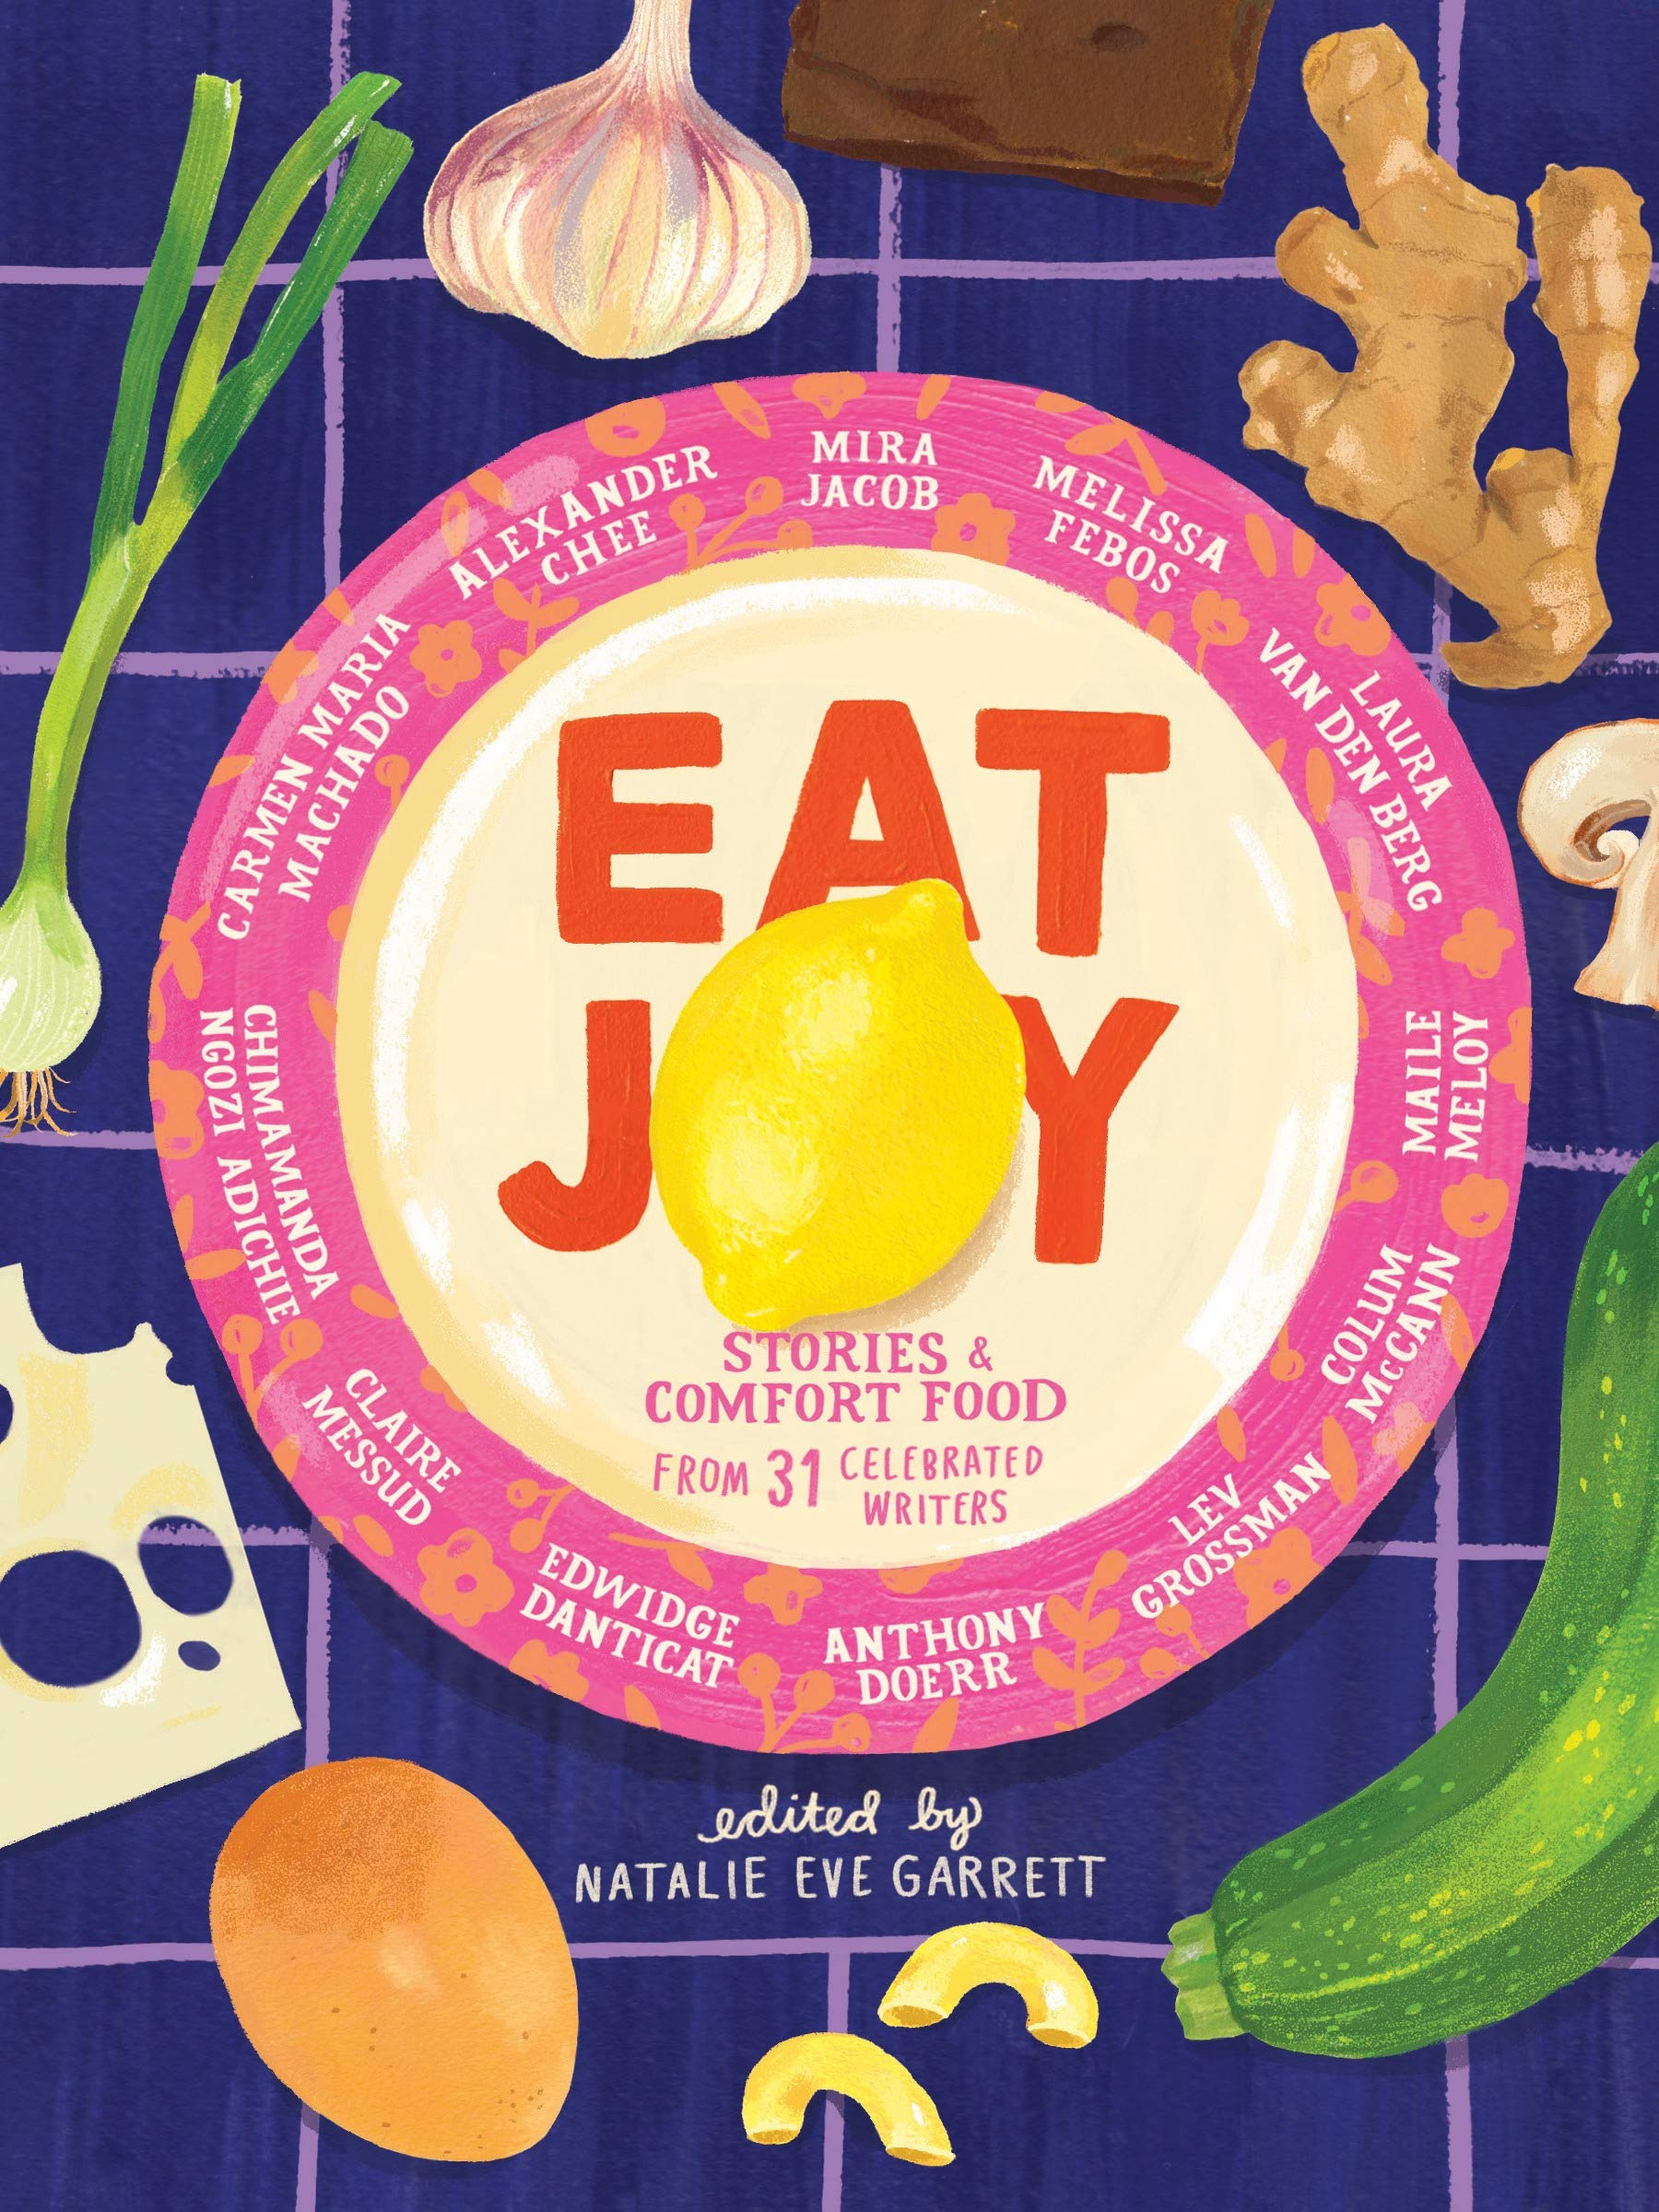 Zoom Adult Book Discussion Group: Eat Joy: Stories and Comfort Food from 31 Celebrated Writers